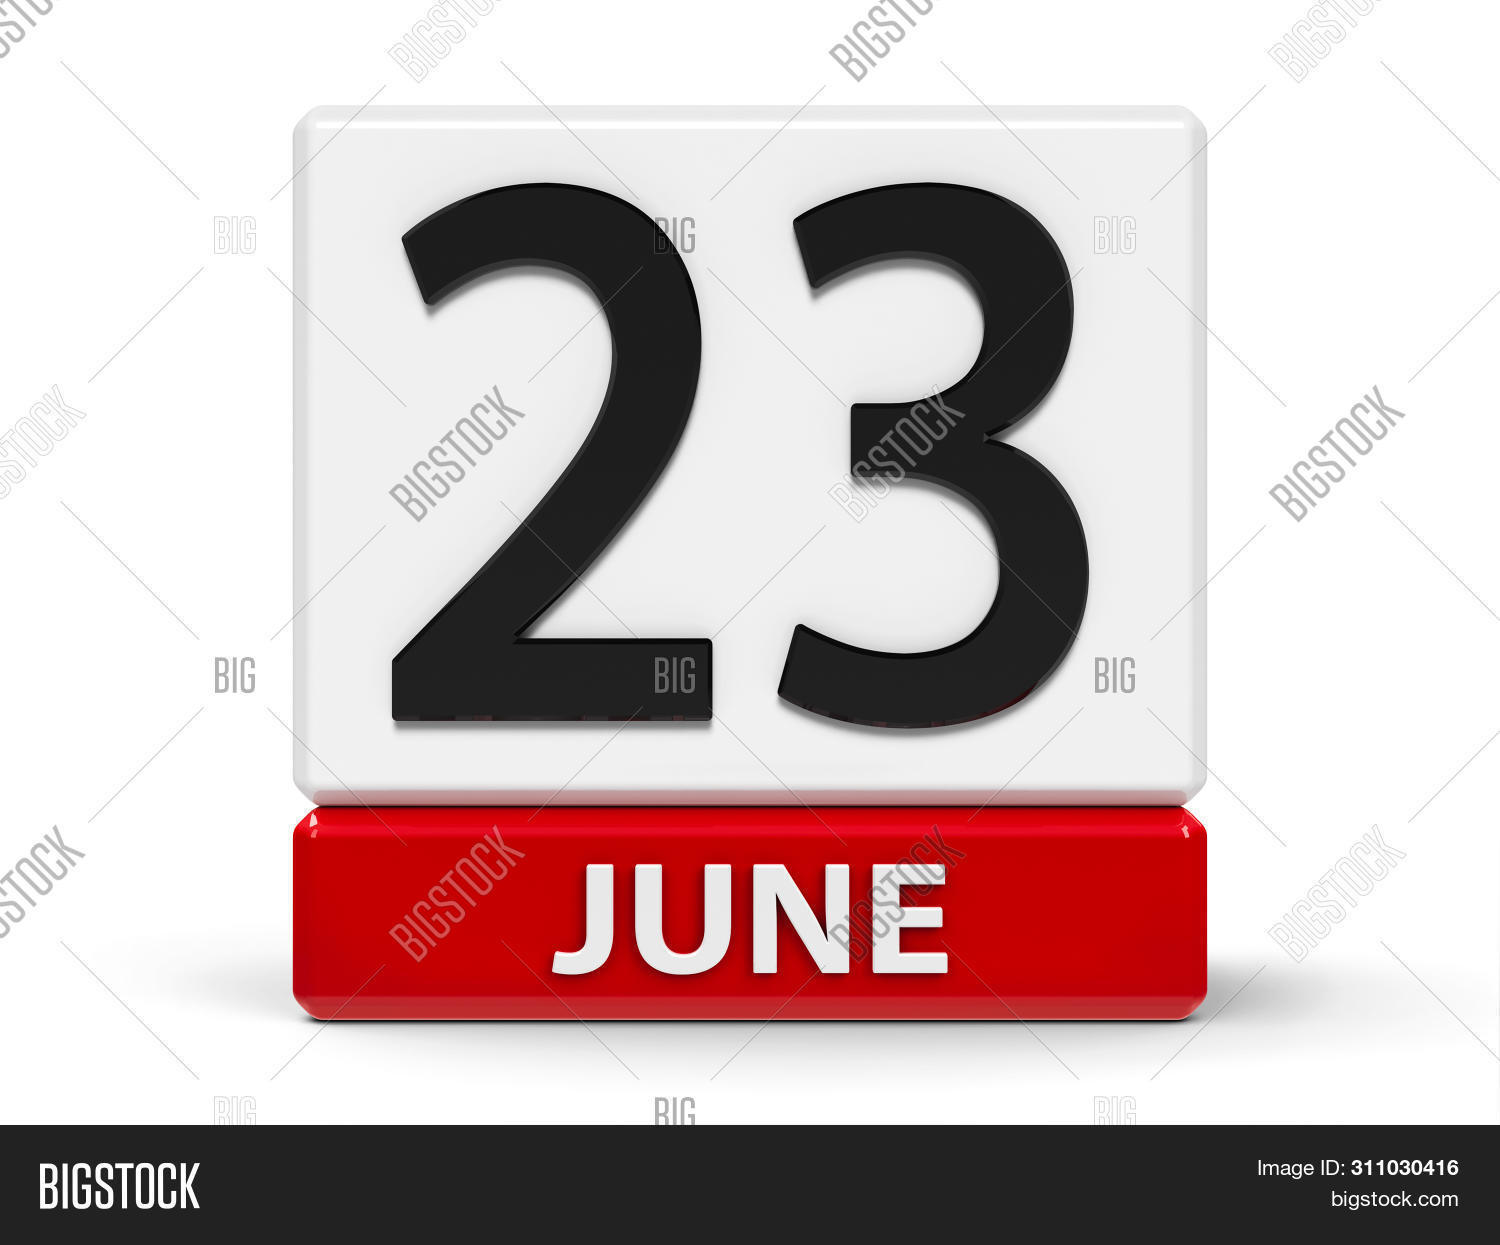 3d,business,button,calendar,celebration,cubes,date,day,design,dice,dimensional,event,games,icon,illustration,international,isolated,june,monday,nations,number,organiser,organizer,plan,public,red,remember,reminder,render,service,sign,sport,success,summer,sunday,time,today,twenty,twenty-third,twenty-three,un,united,web,white,widow,year